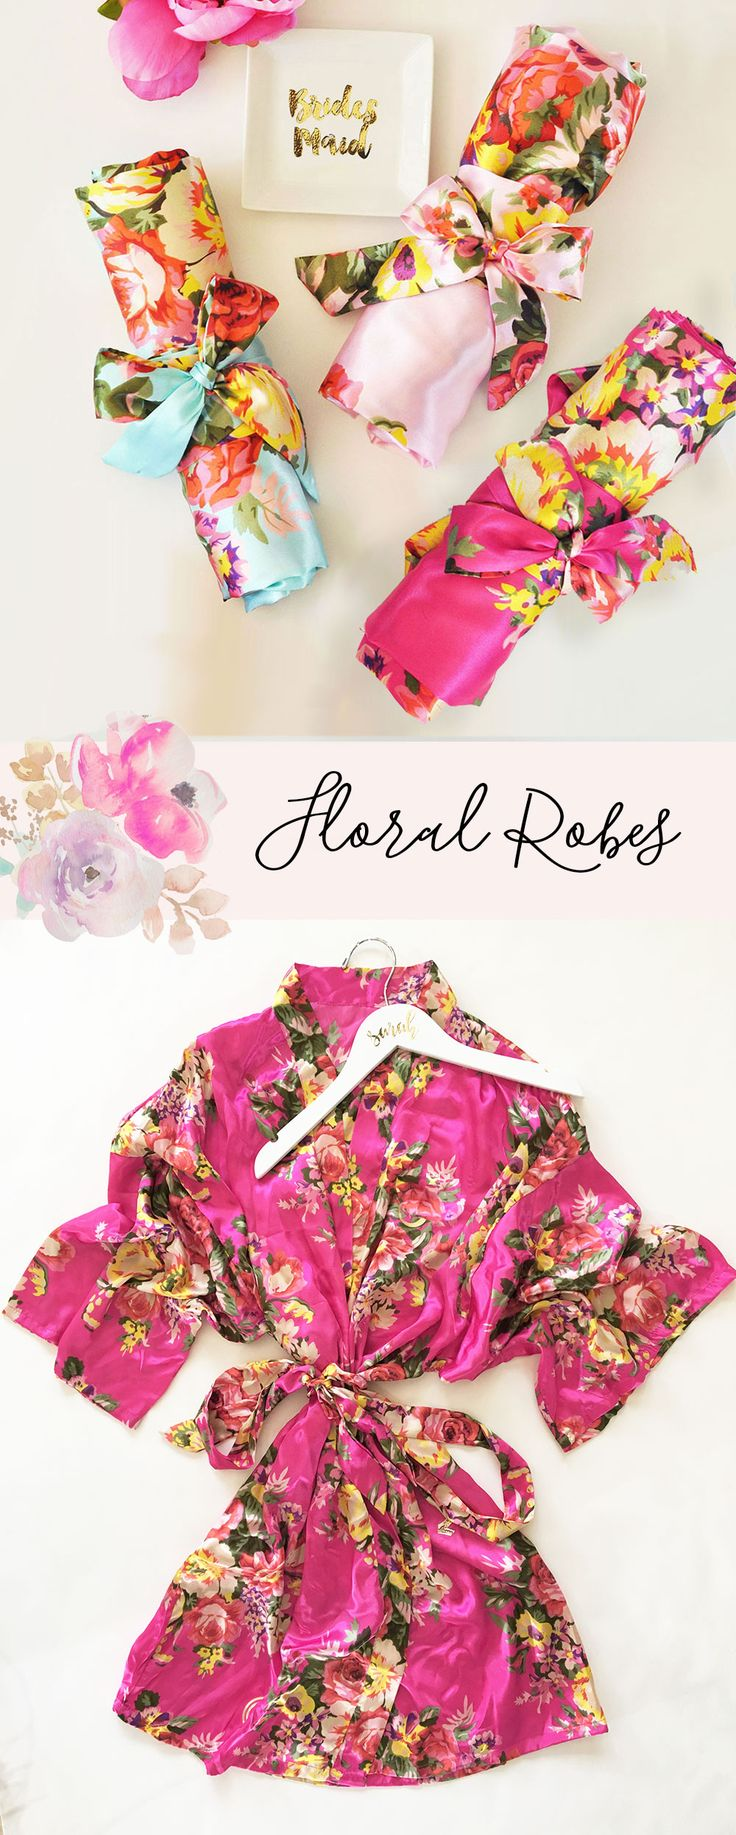 Floral Robe | Bridesmaid Gift Ideas | Floral Bridesmaid Robe | Floral Print